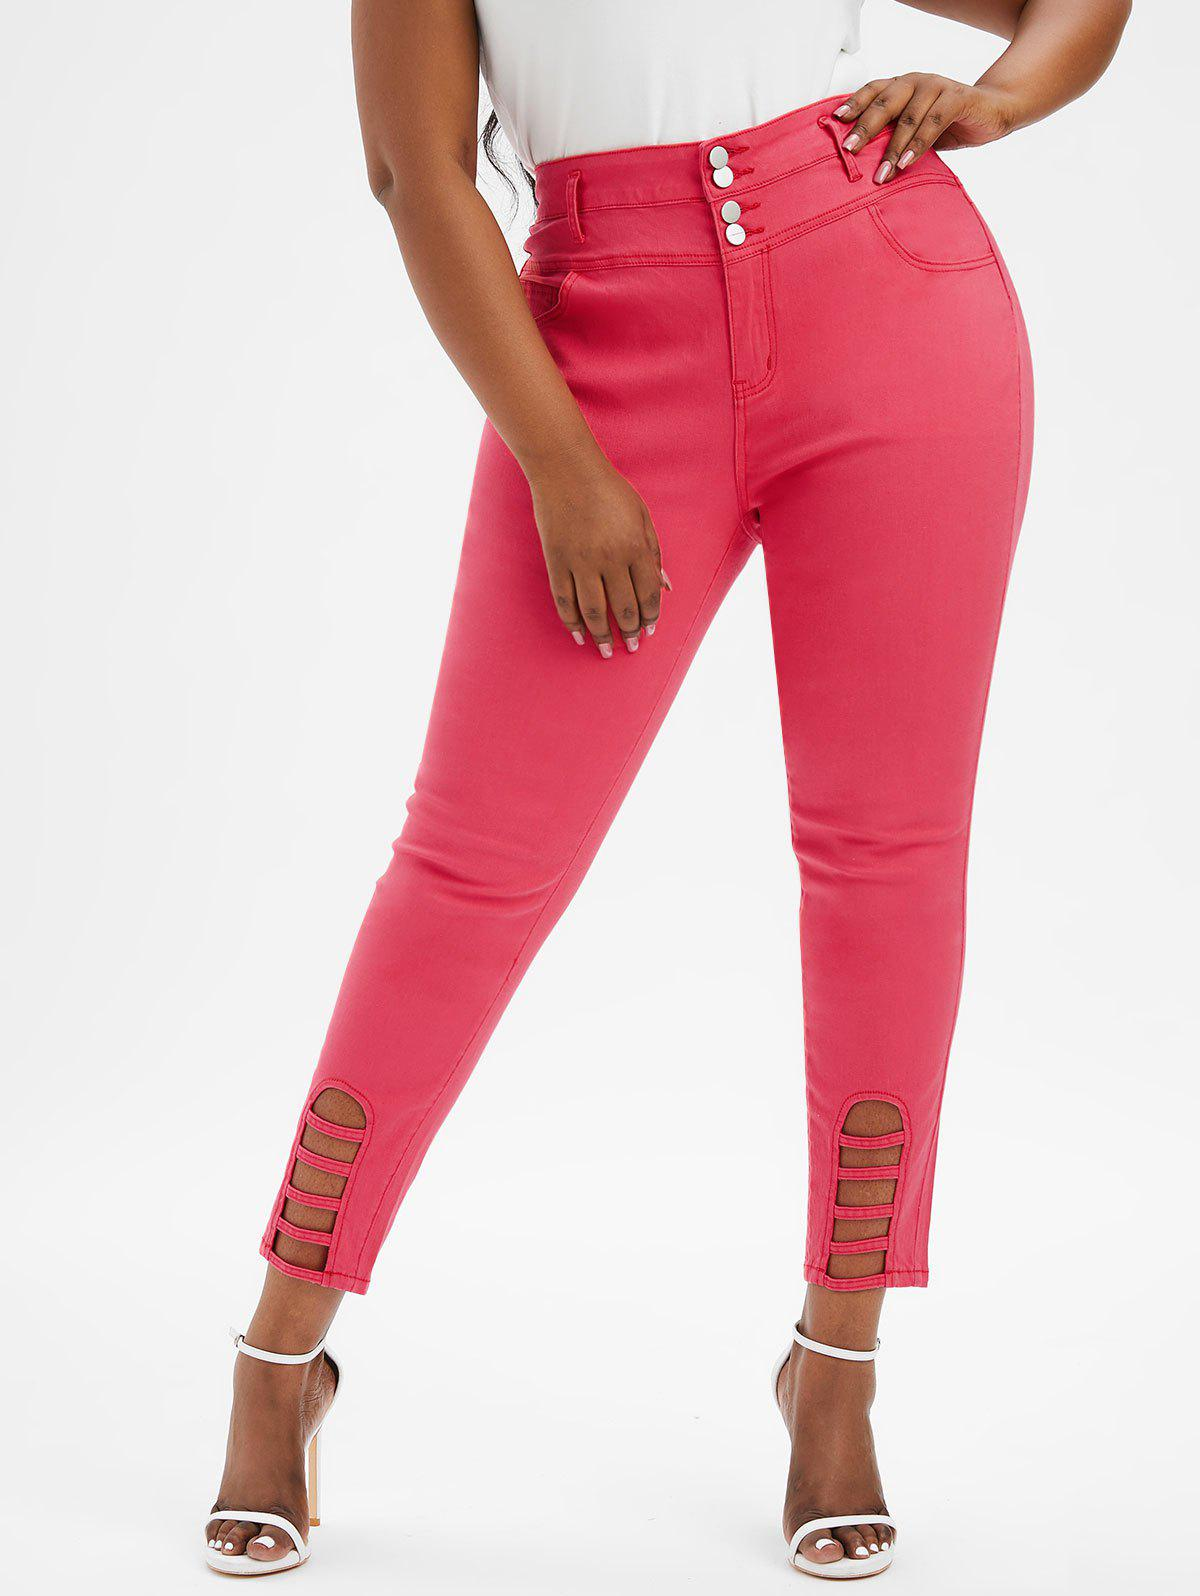 Plus Size High Rise Ladder Cut Jeans - RED 5X